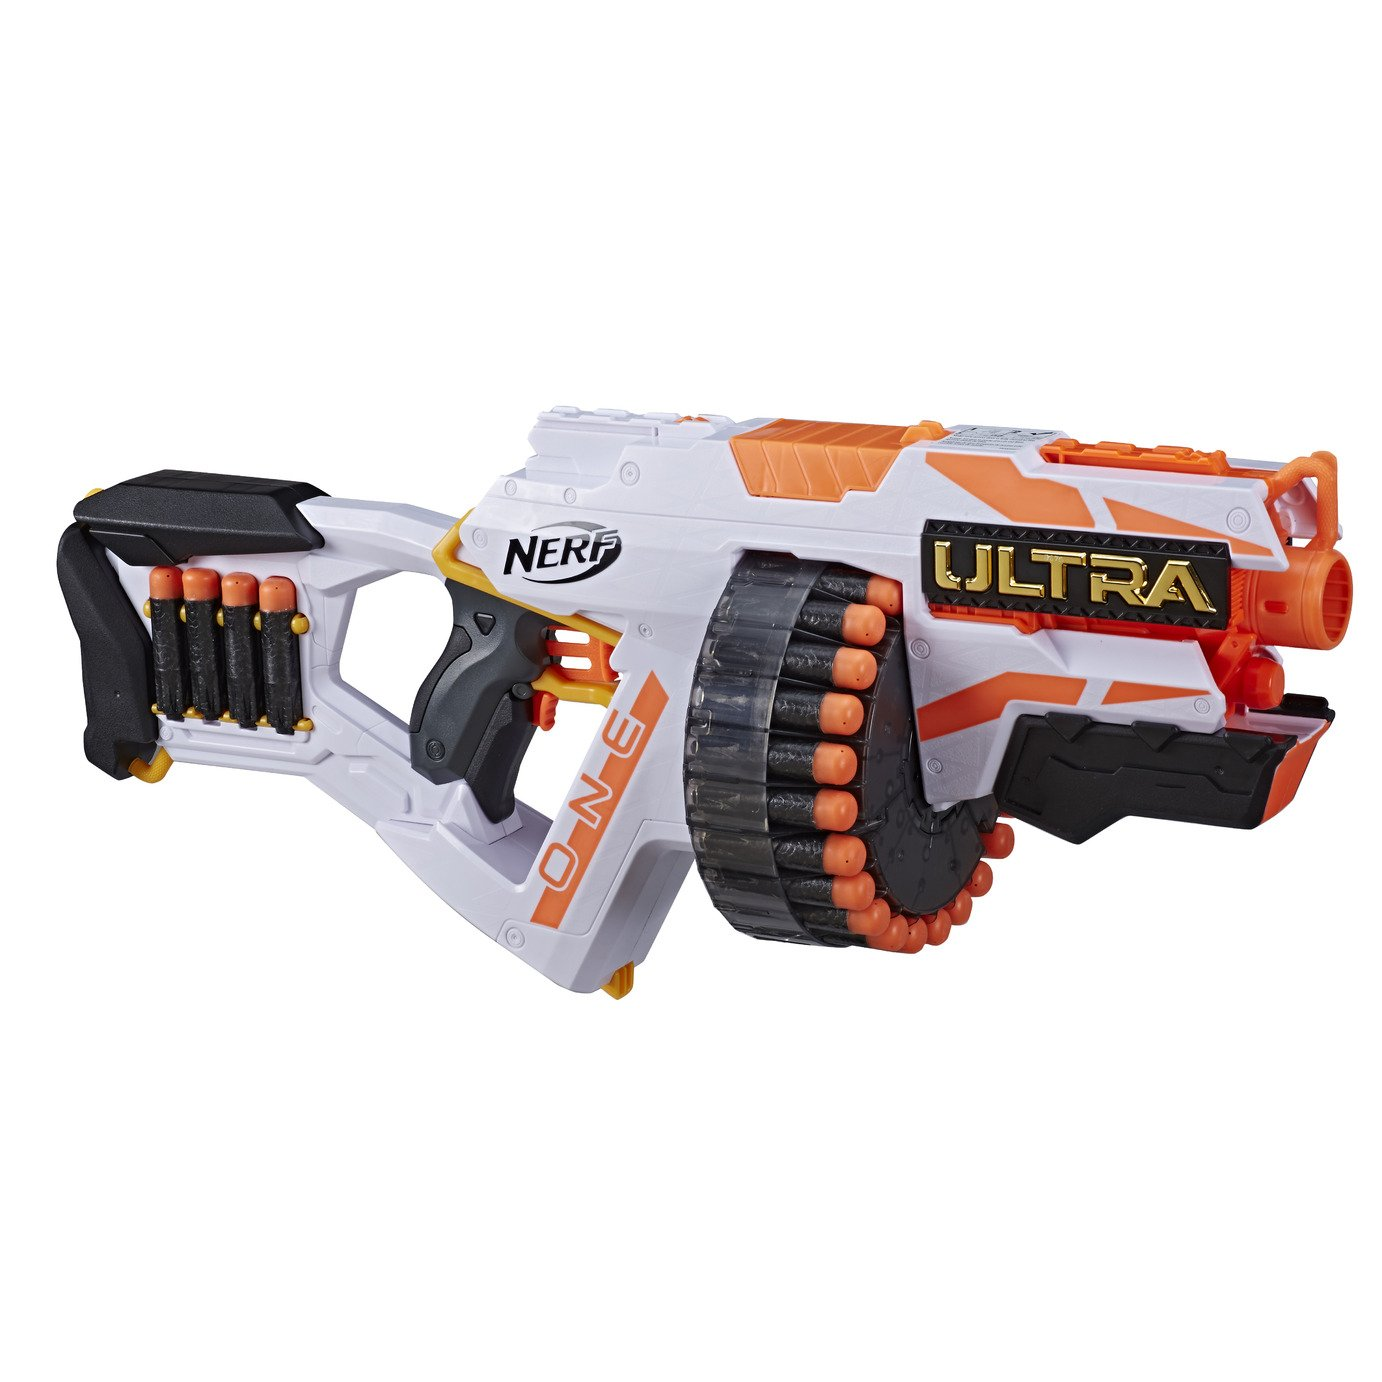 Nerf Ultra One Motorised Blaster